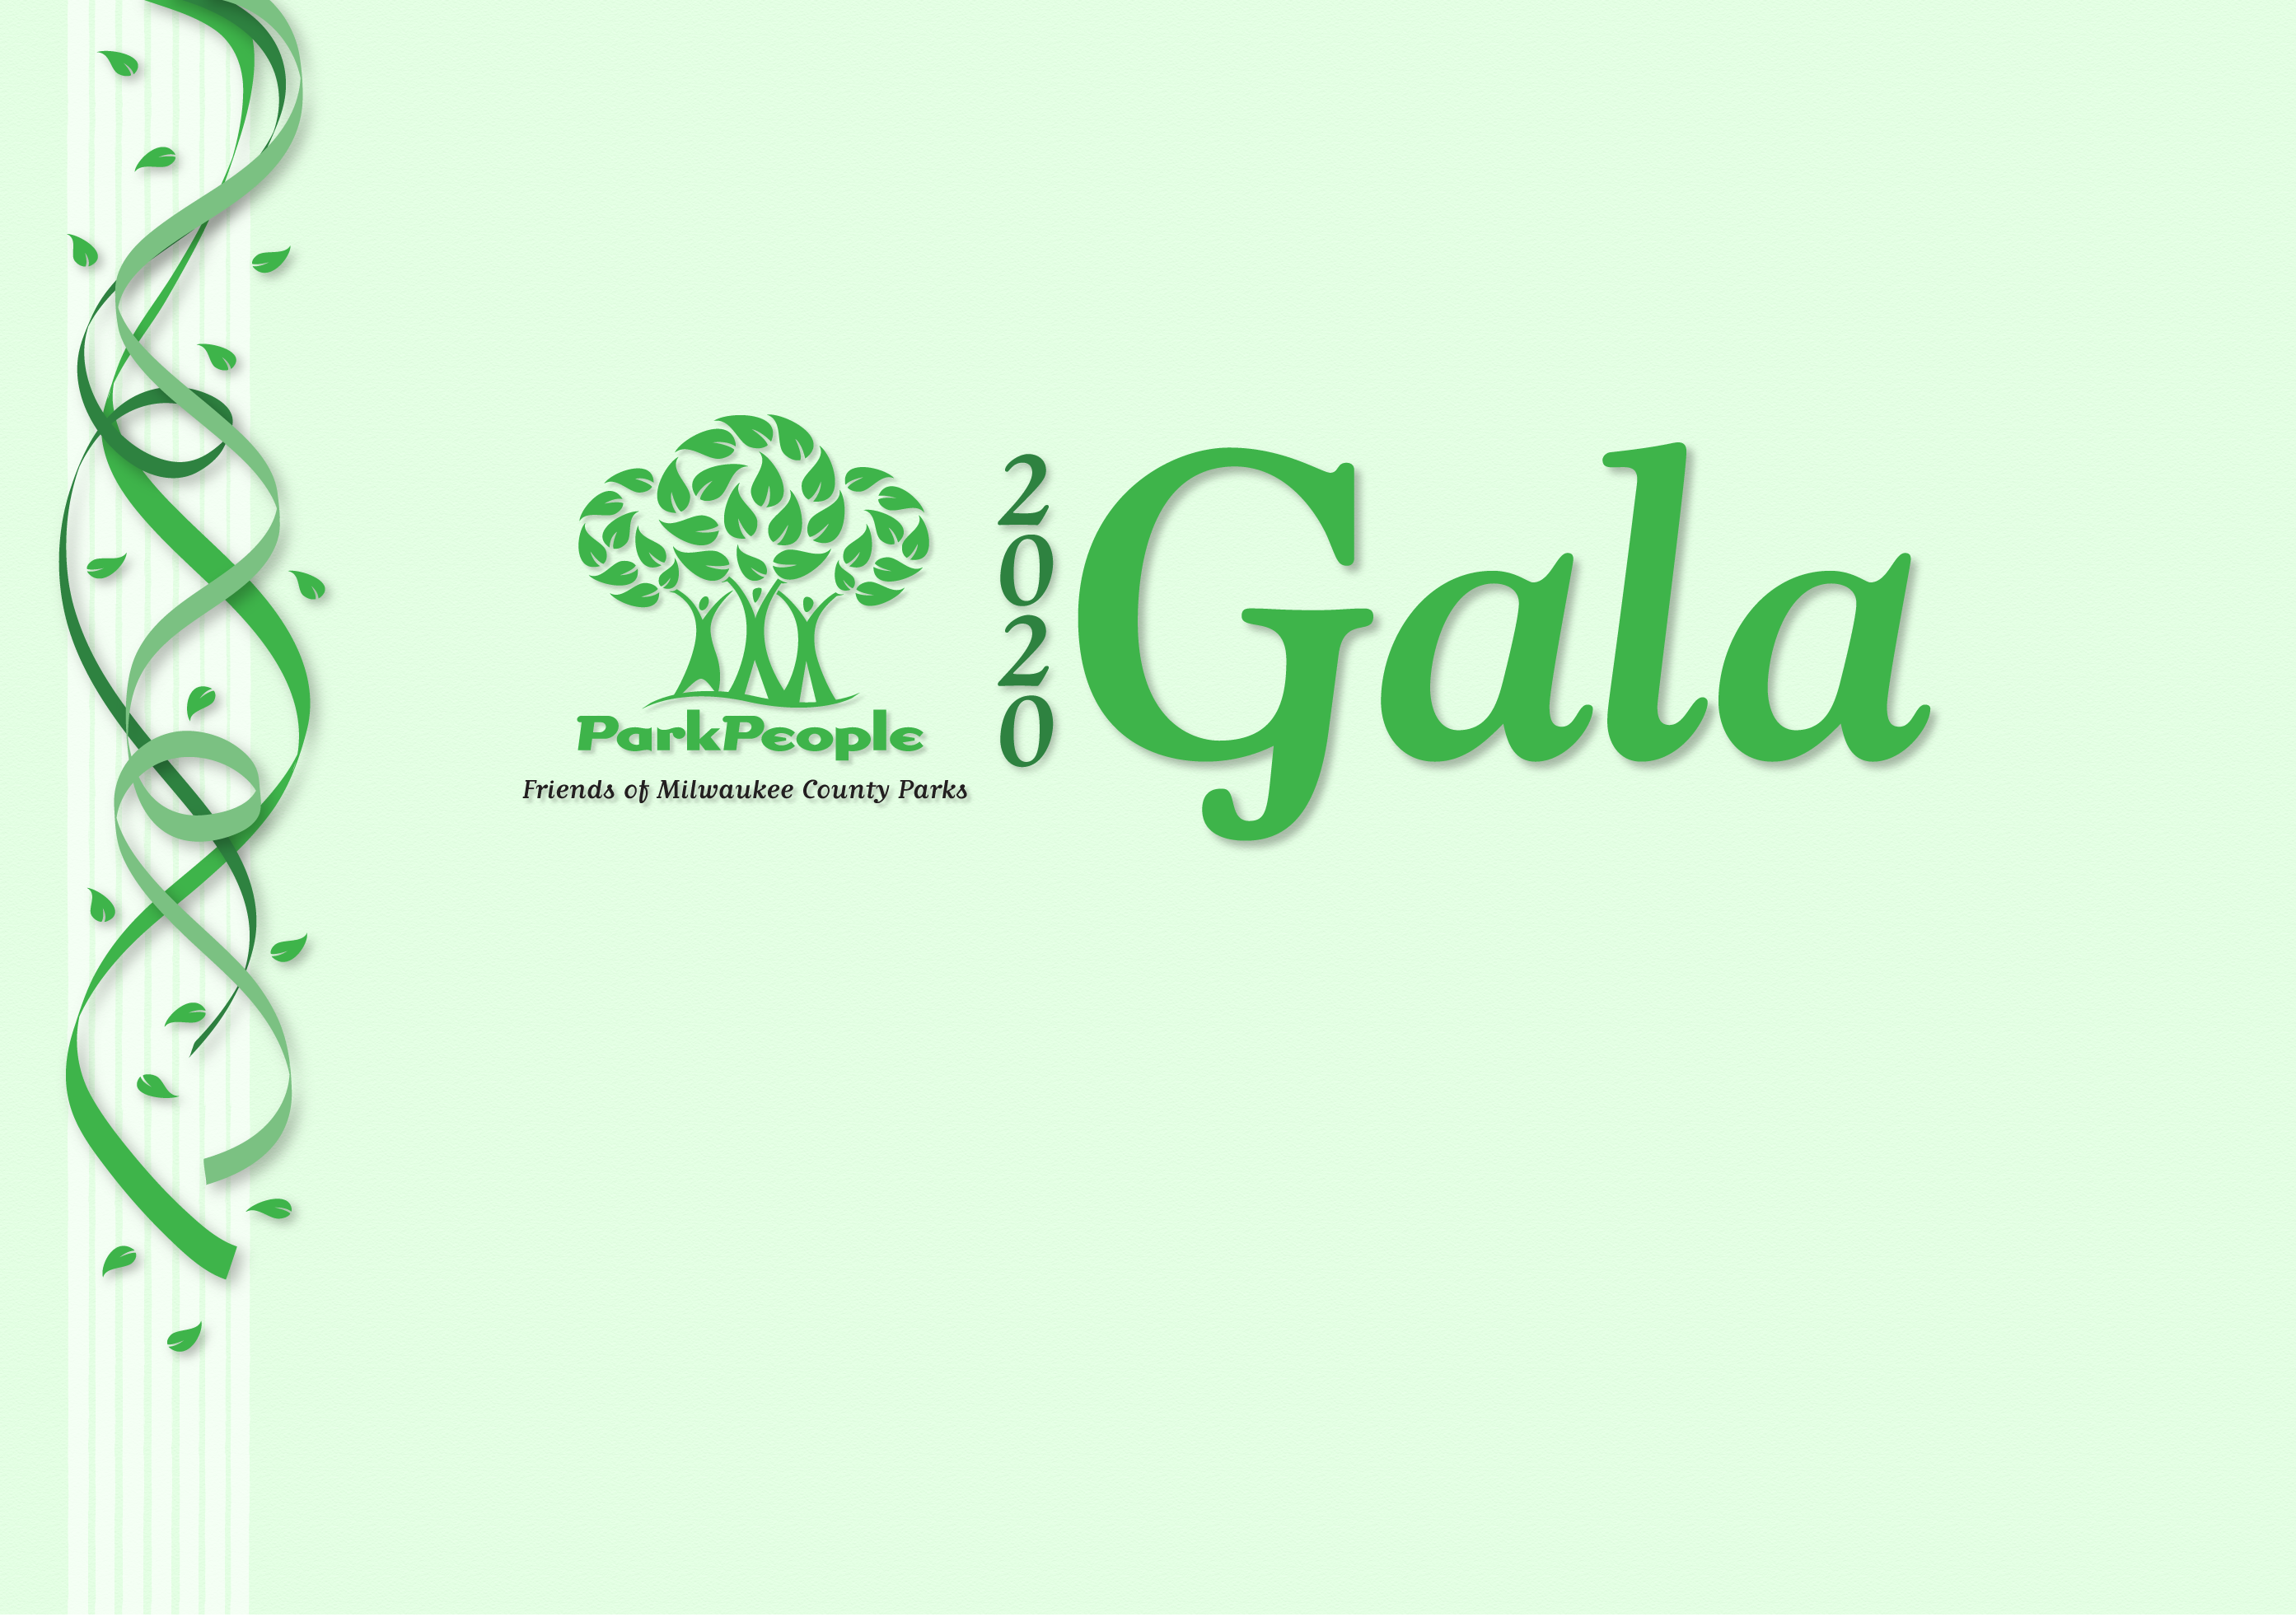 Logo for the 2020 Park People Gala